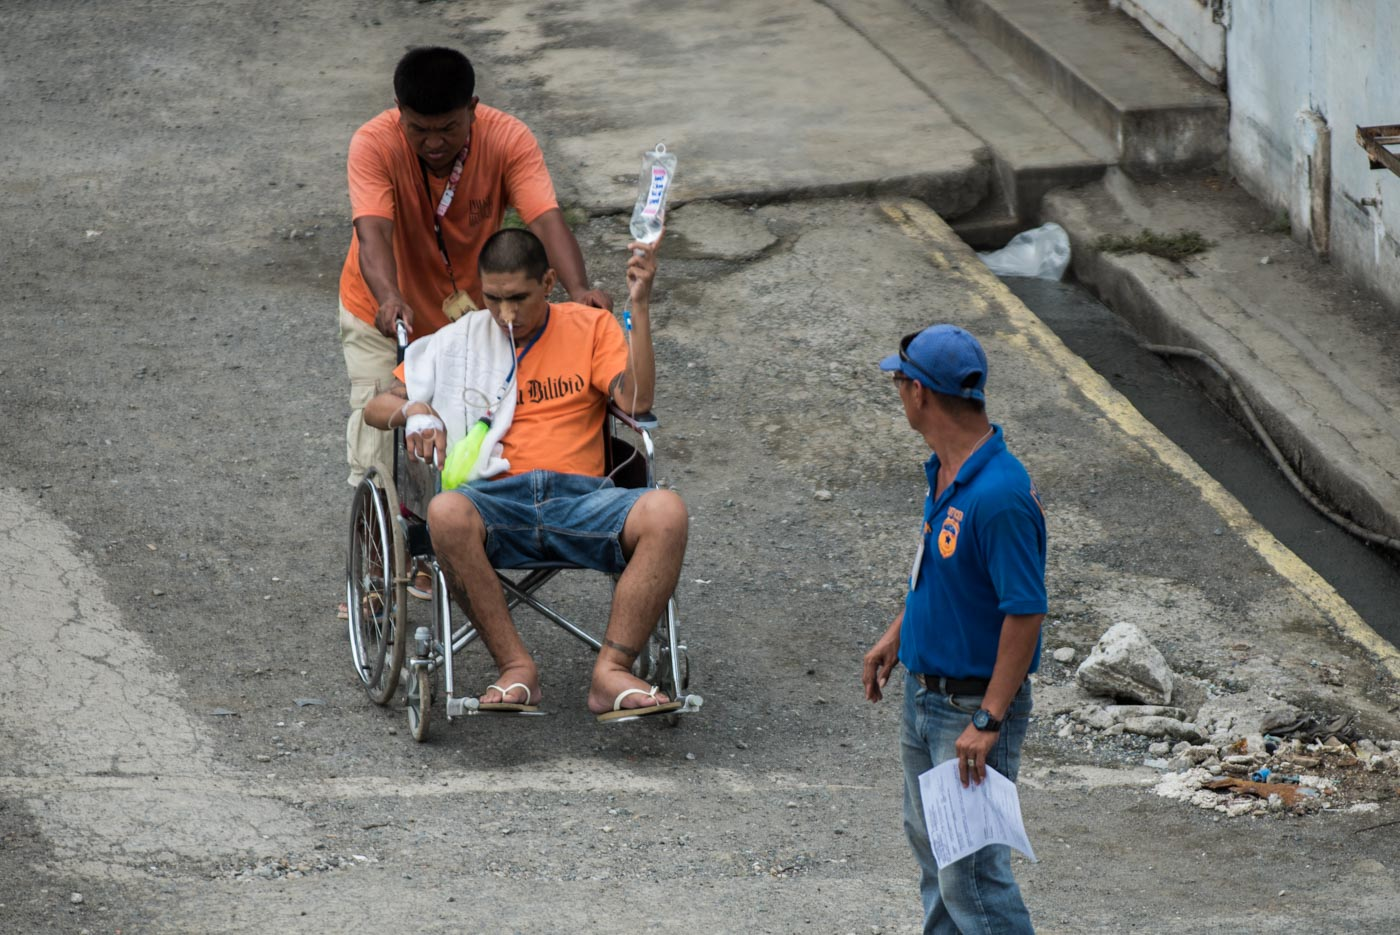 MEDICAL CARE NEEDED. A sick inmate's wheelchair is being pushed by another prisoner under the heat of the sun. Photo by Lisa Marie David/Rappler